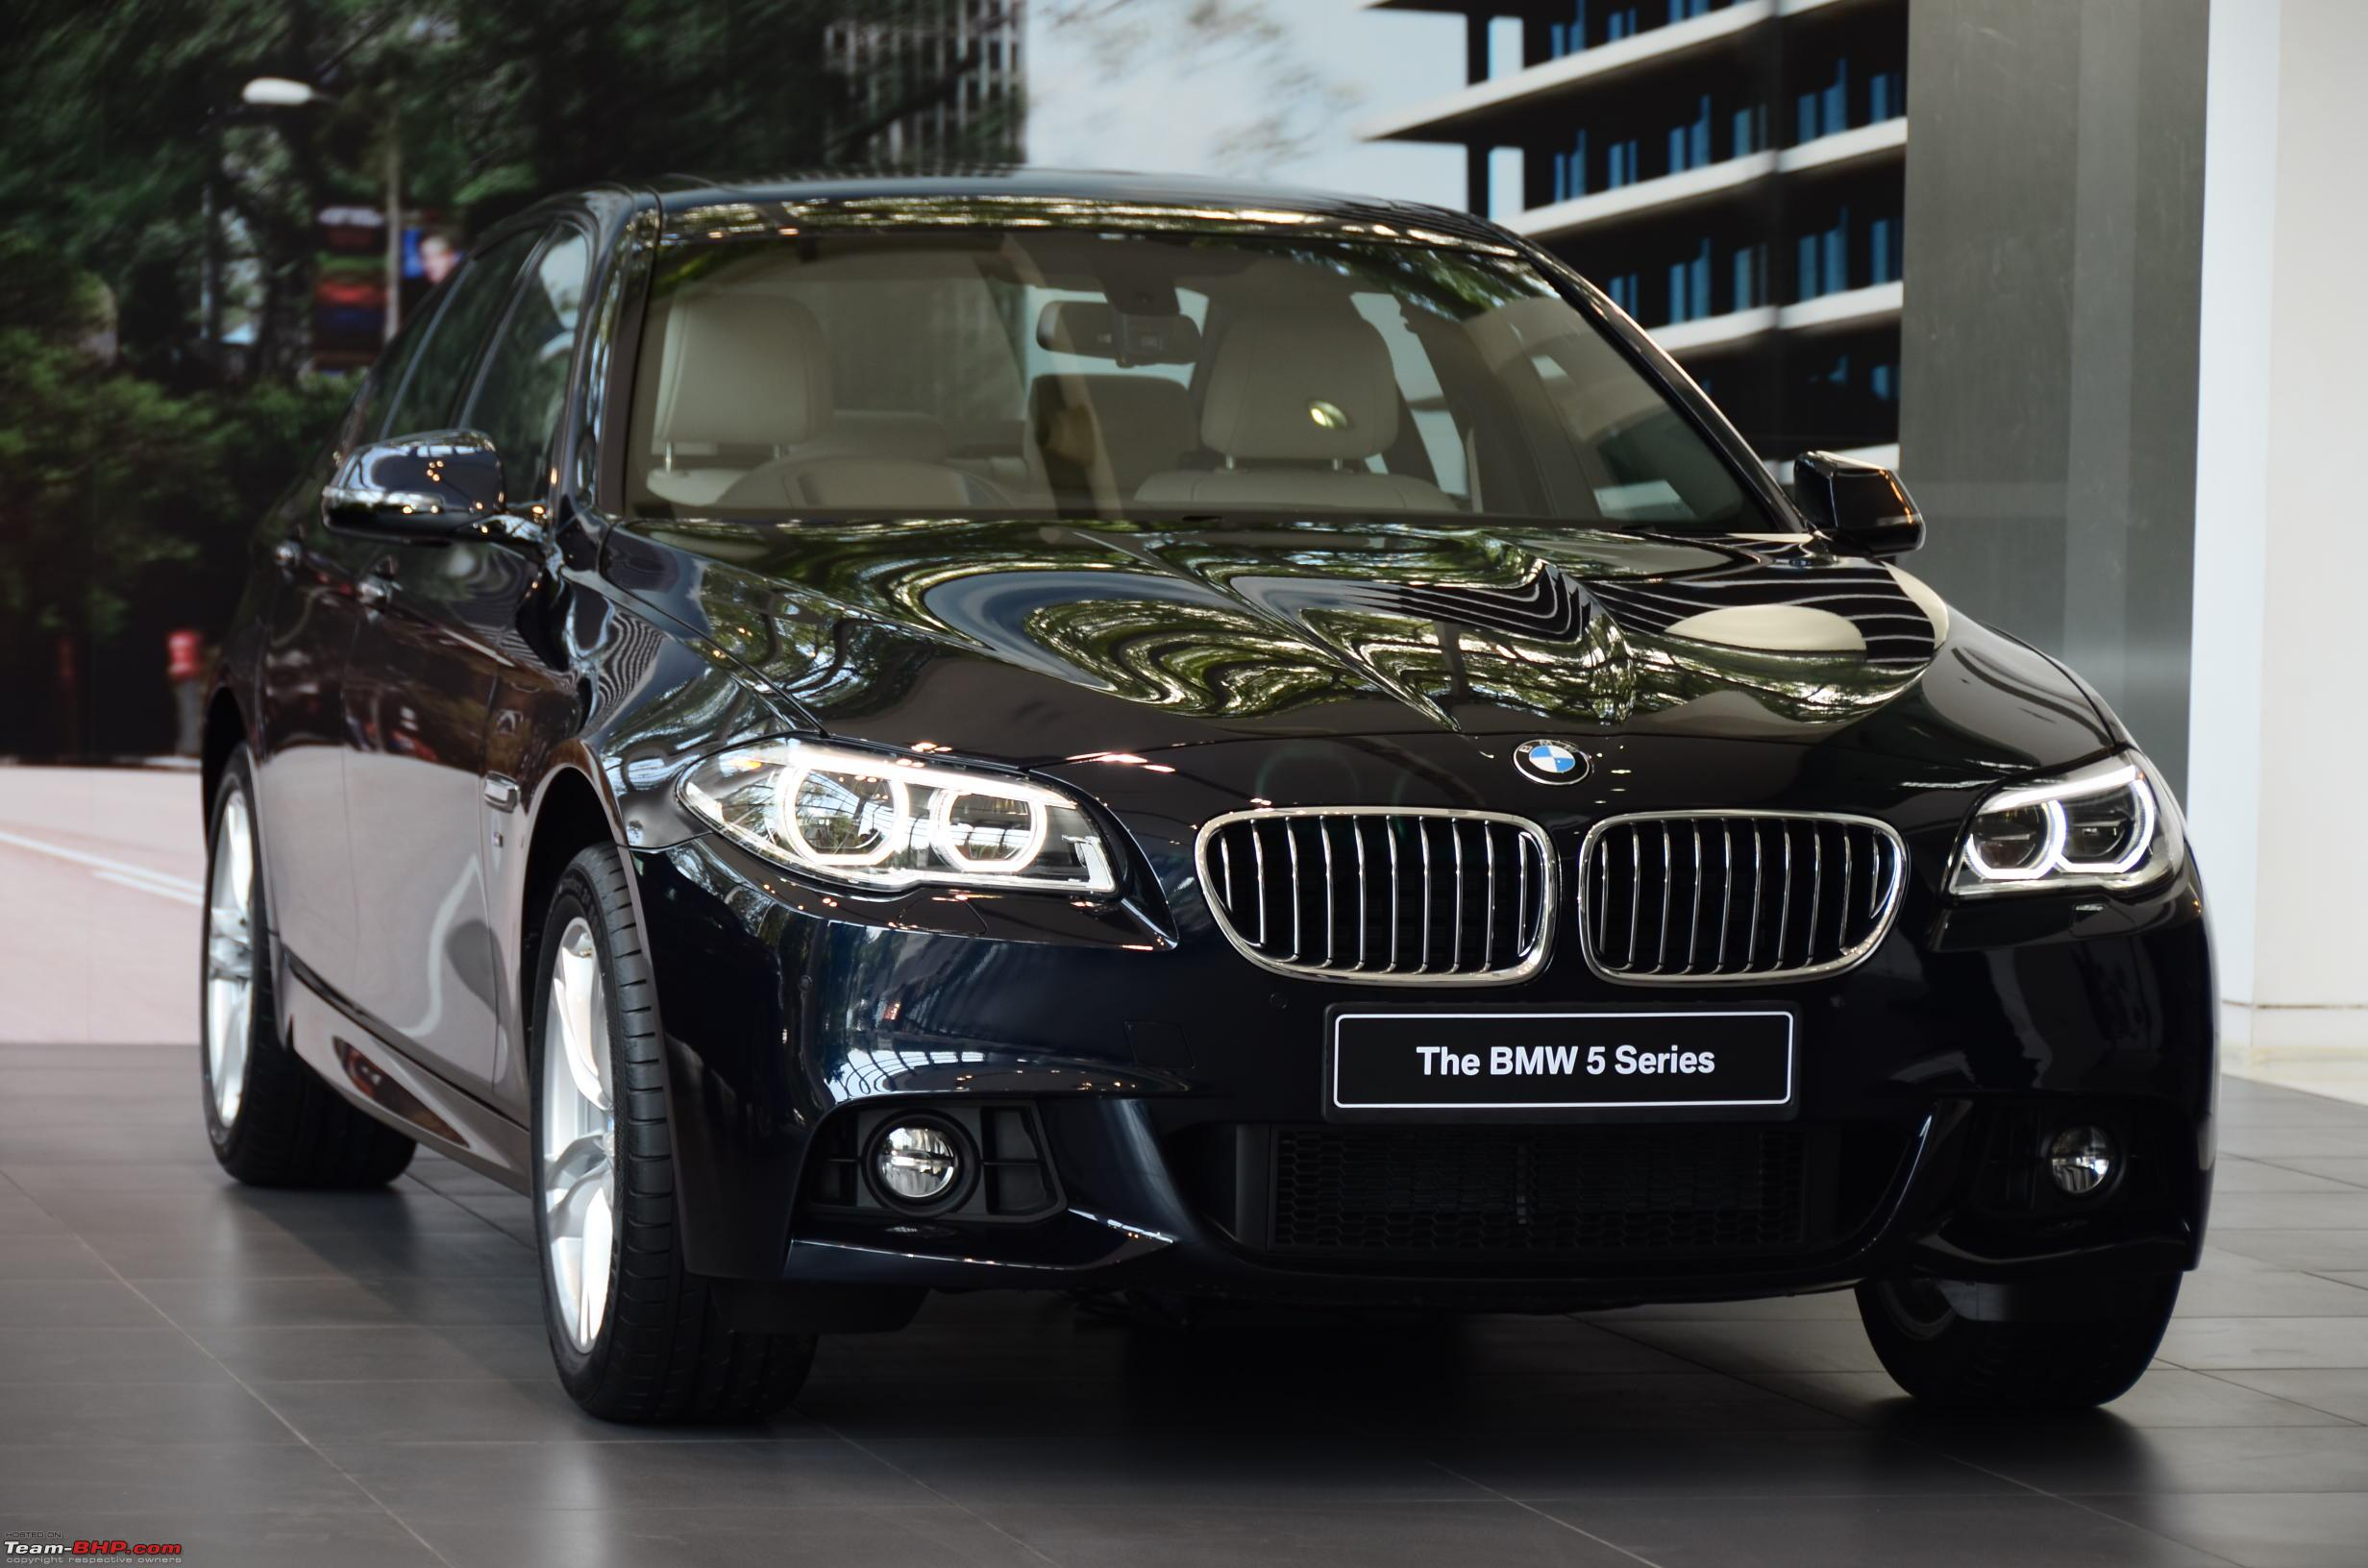 2013 Bmw 5 Series Facelift Launched In India Team Bhp